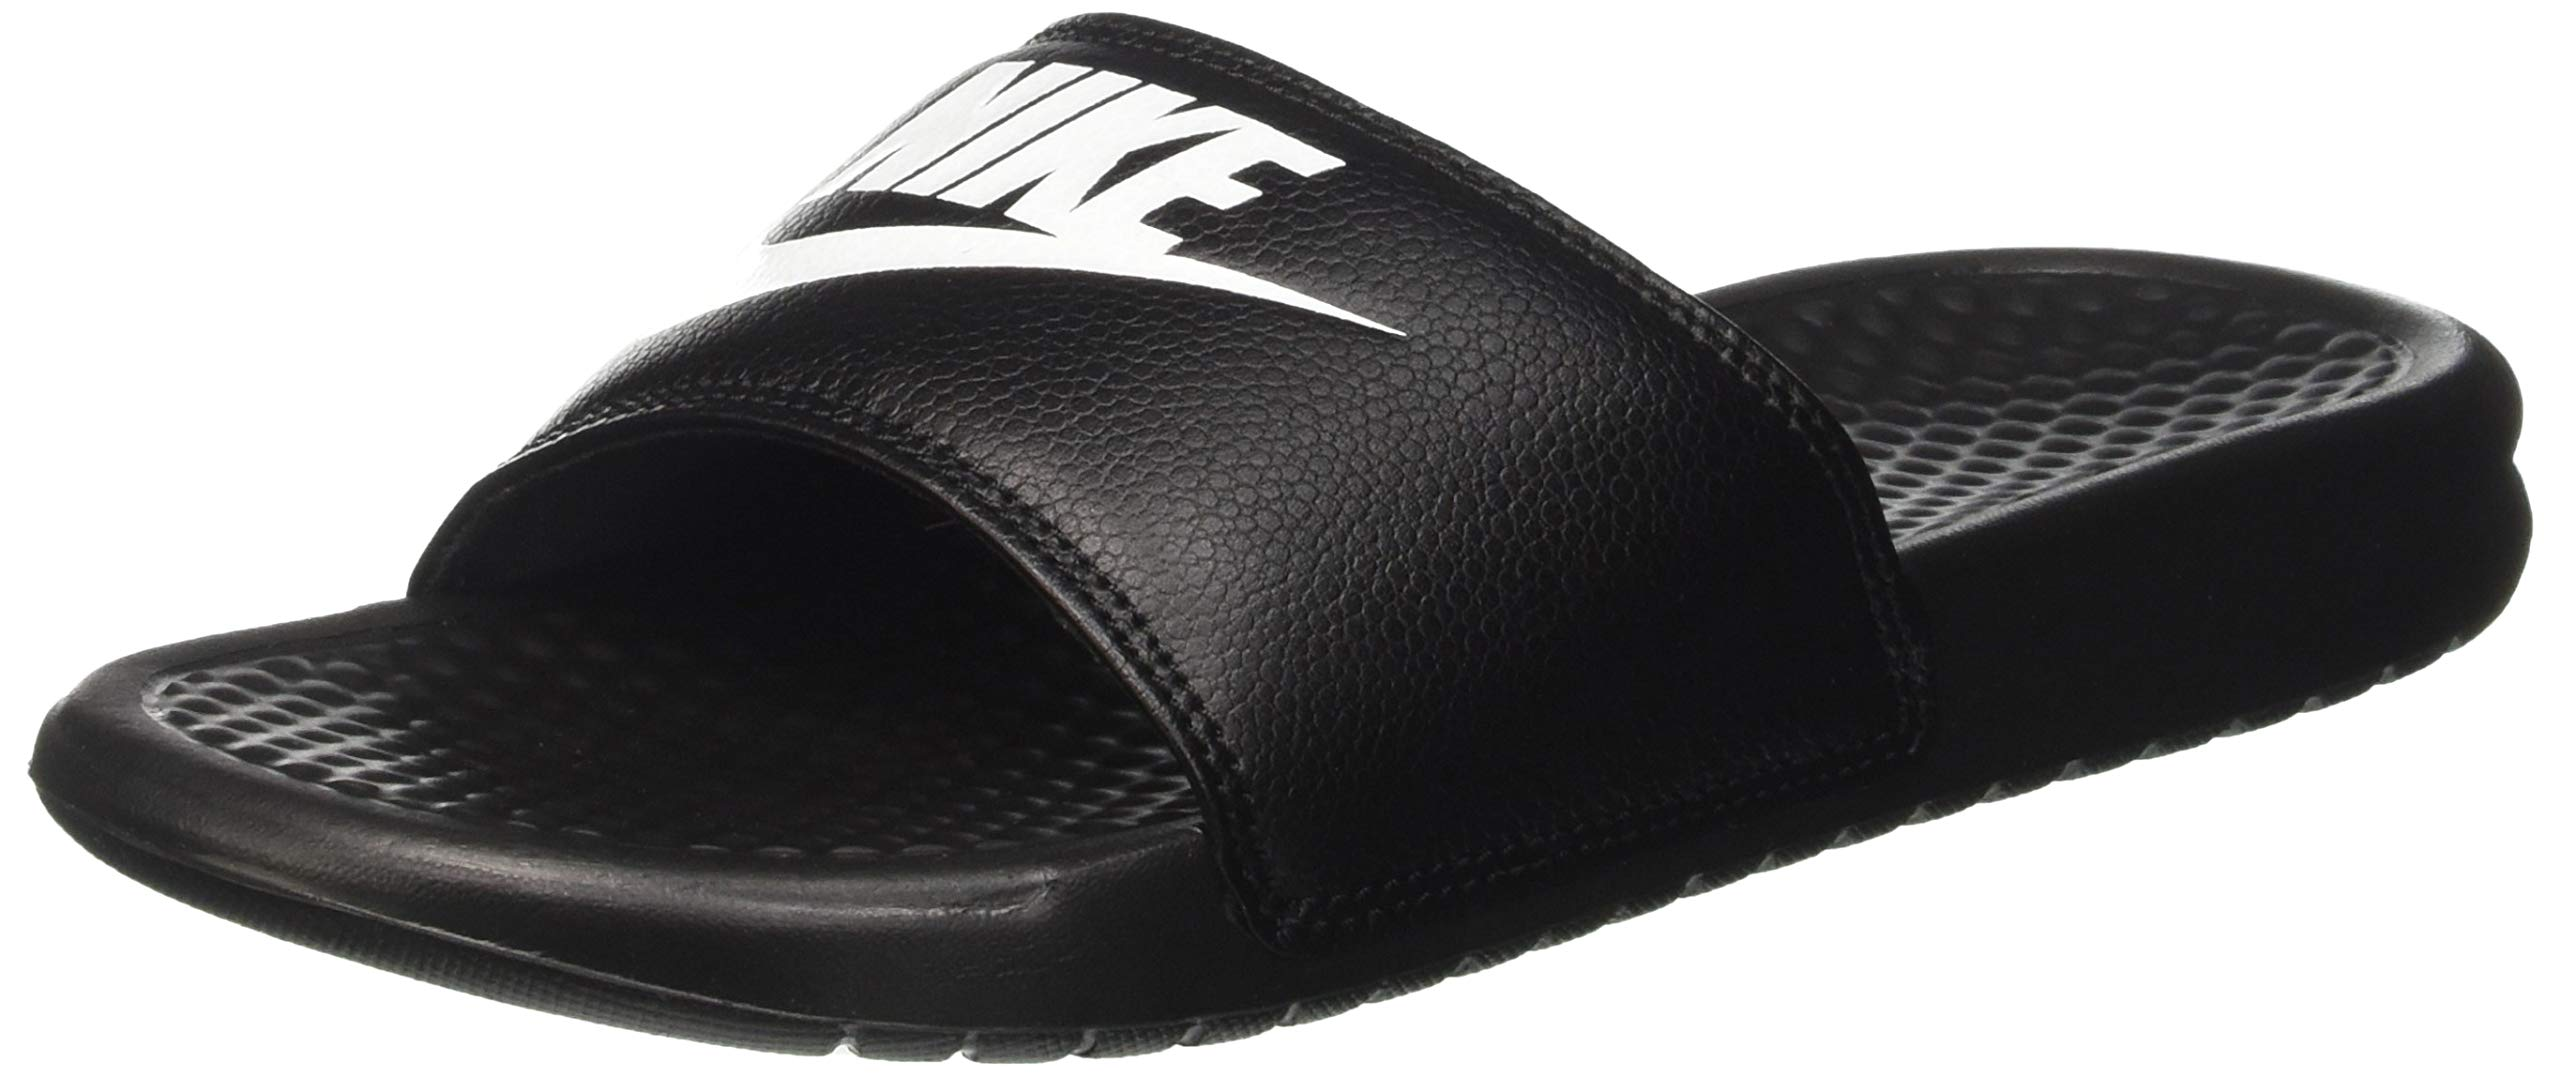 ceda057f0fd7 Best Rated in Men s Pool Shoes   Helpful Customer Reviews - Amazon.co.uk